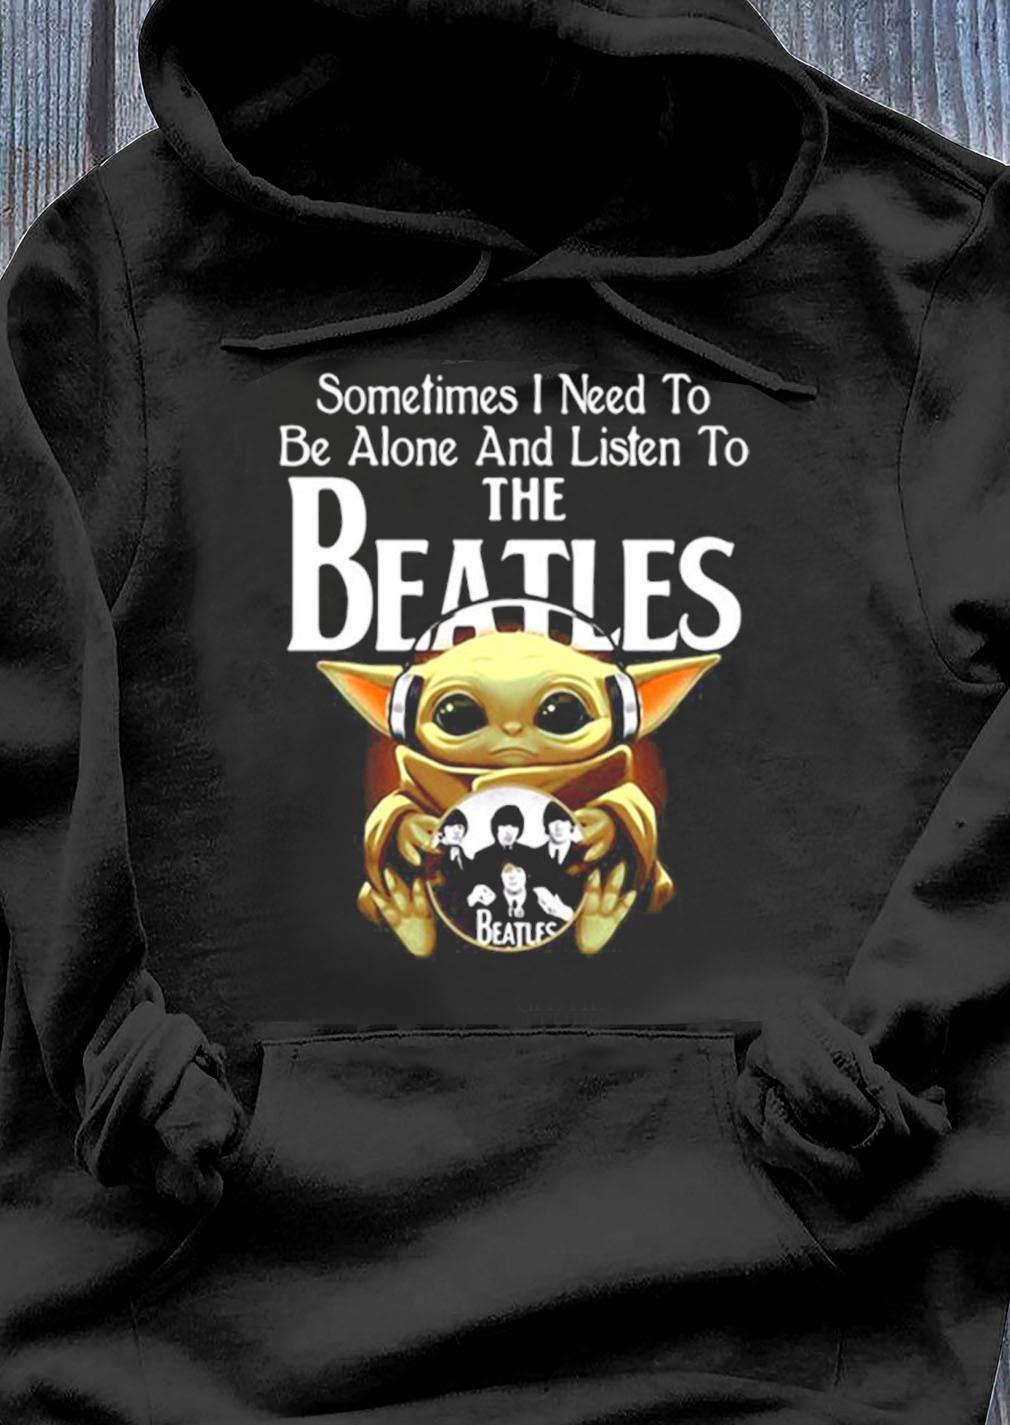 Sometimes I Need To Be Alone And Listen To The Beatles Baby Yoda Shirt Hoodie